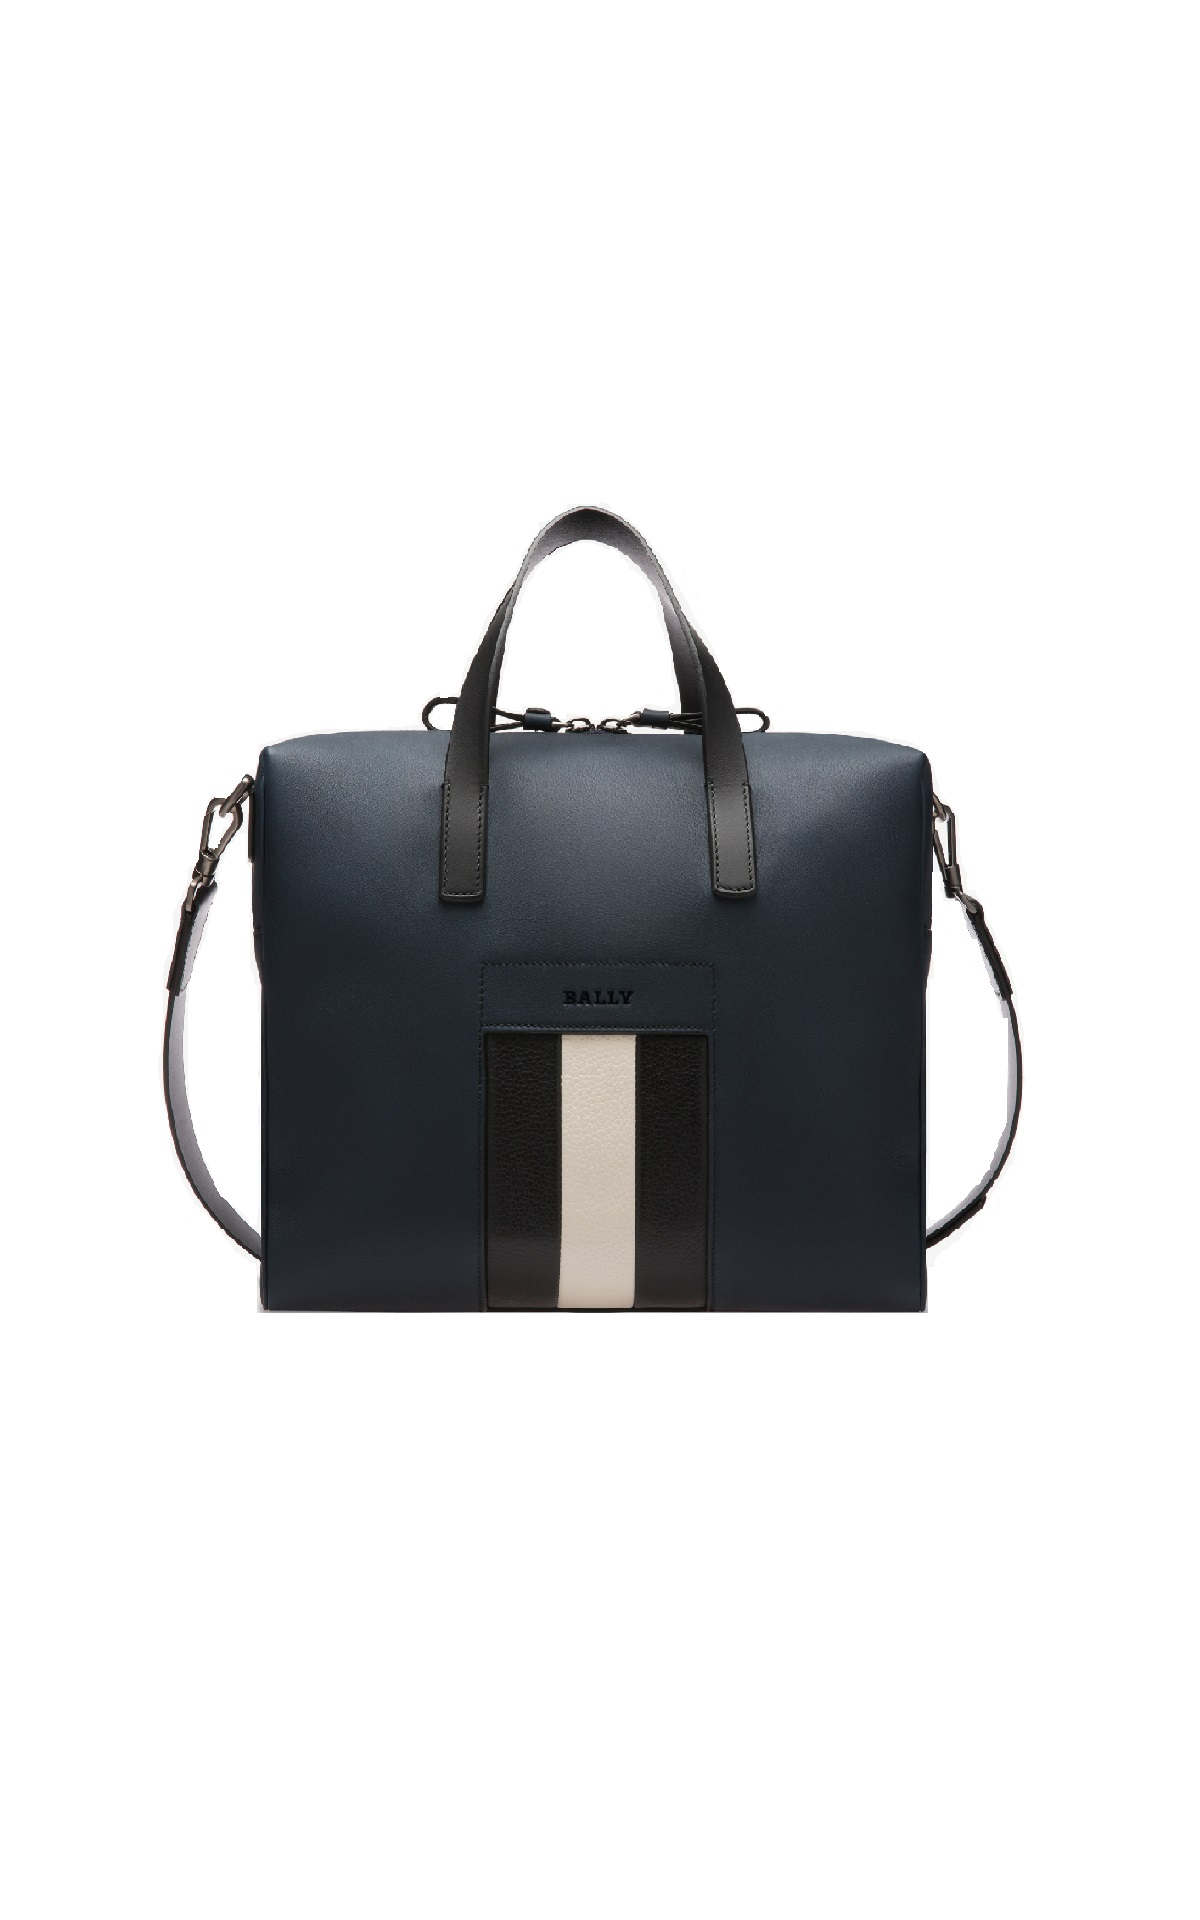 Navy blue leather bag Bally